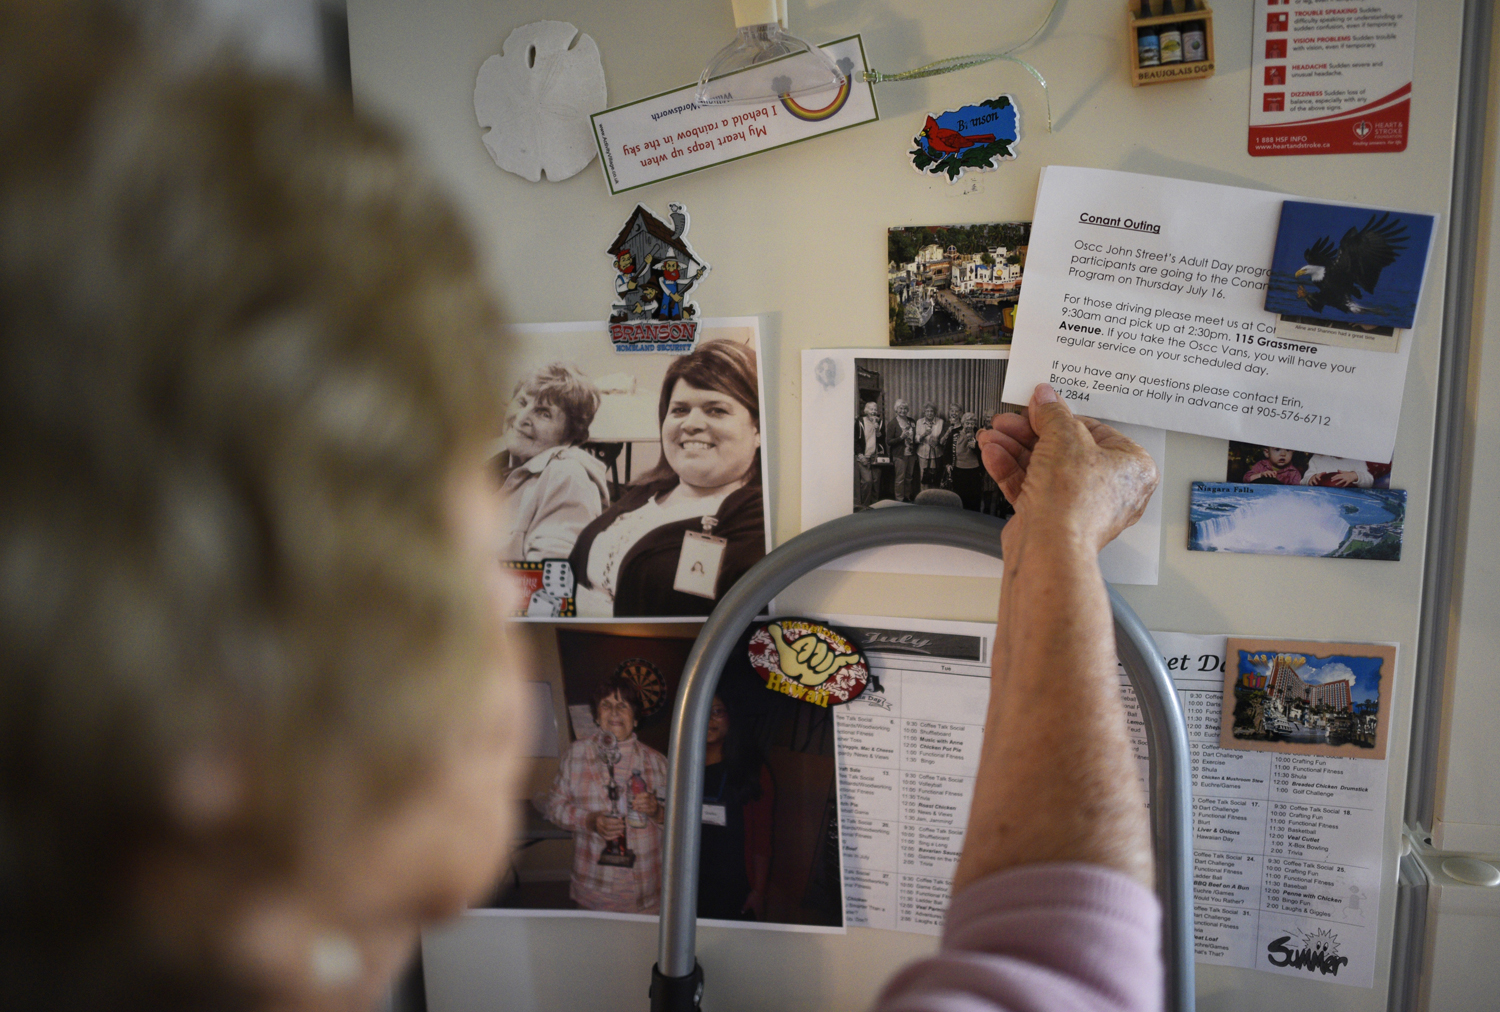 No place like home? Investigating Ontario's home-care shortcomings